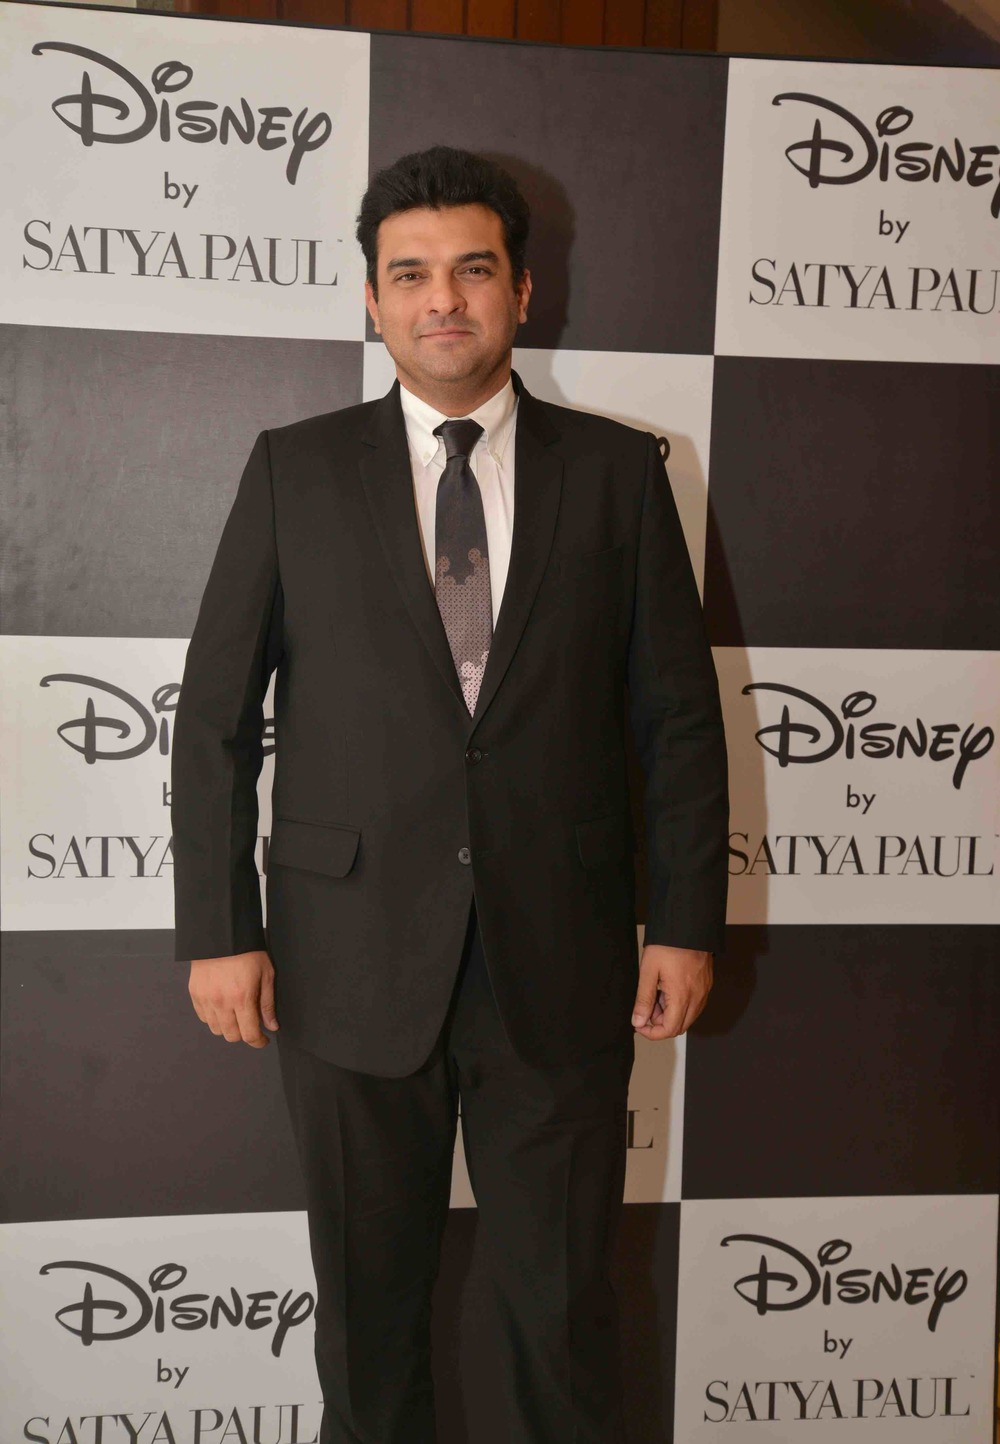 Siddharth Roy Kapur in a Disney Monopop By Satya Paul Tie